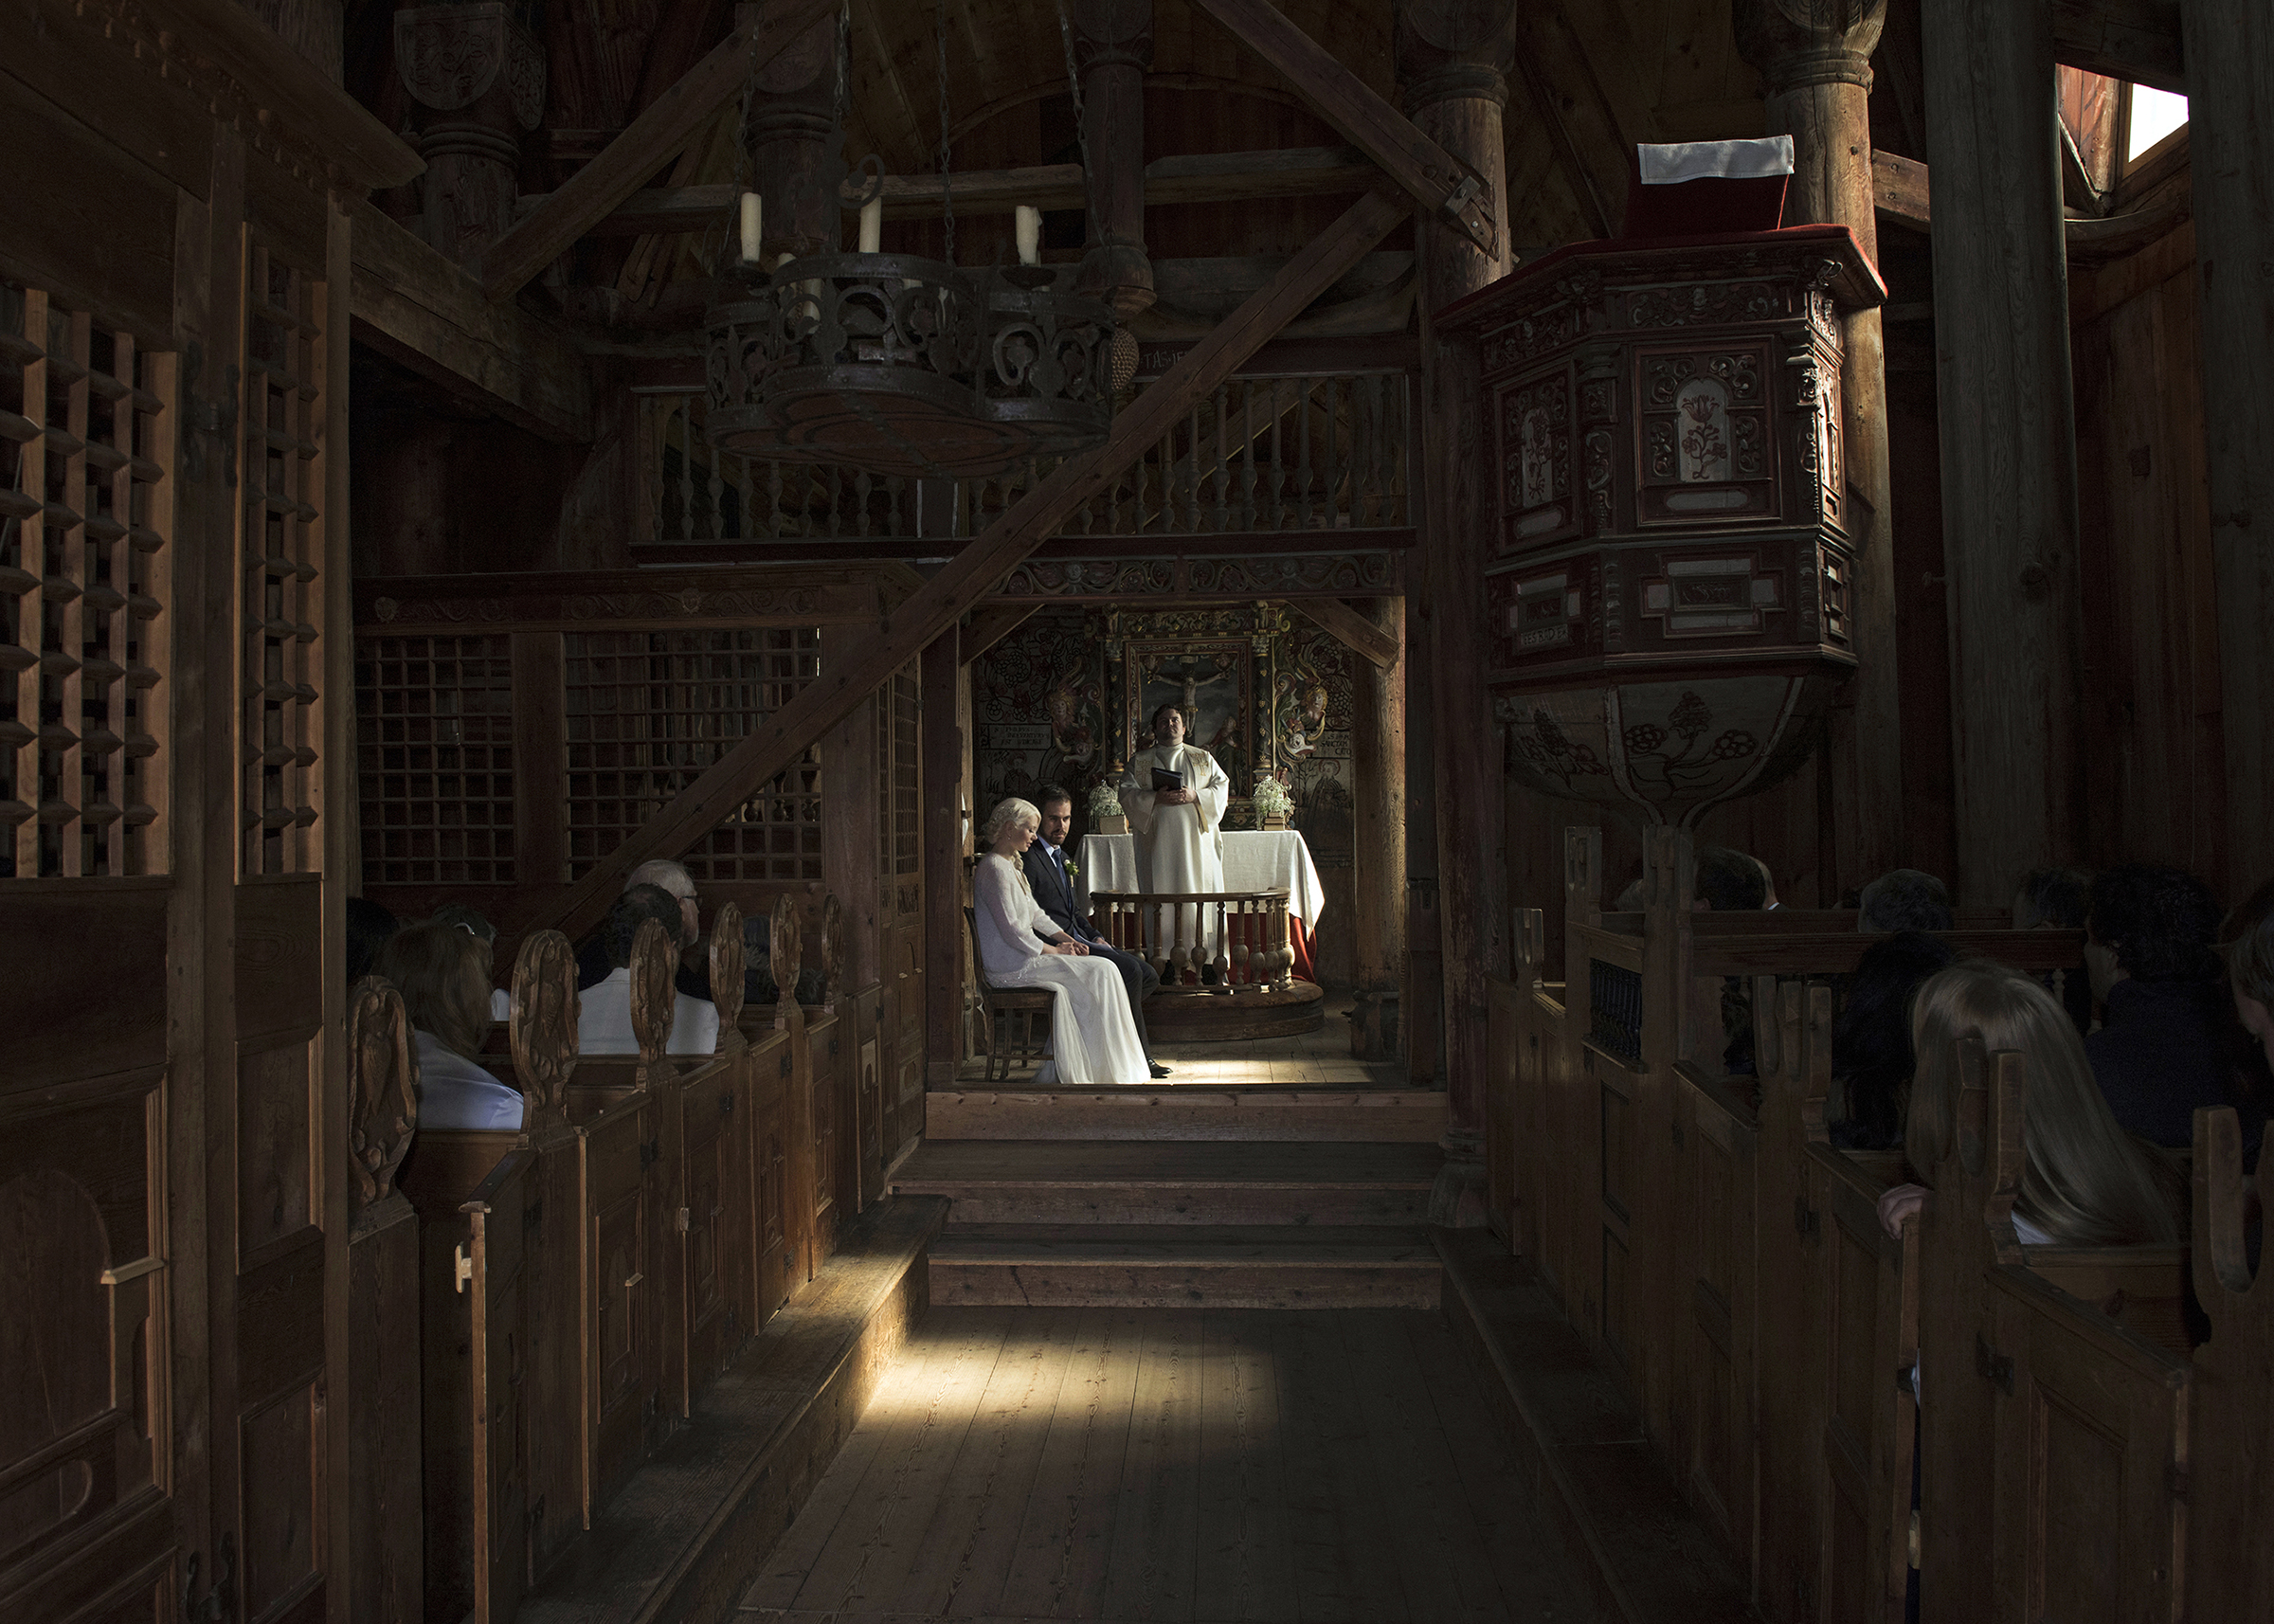 painterly-portrait-of-ceremony-couple-and-officiant-in-rustic-wooden-church-fr-ydis